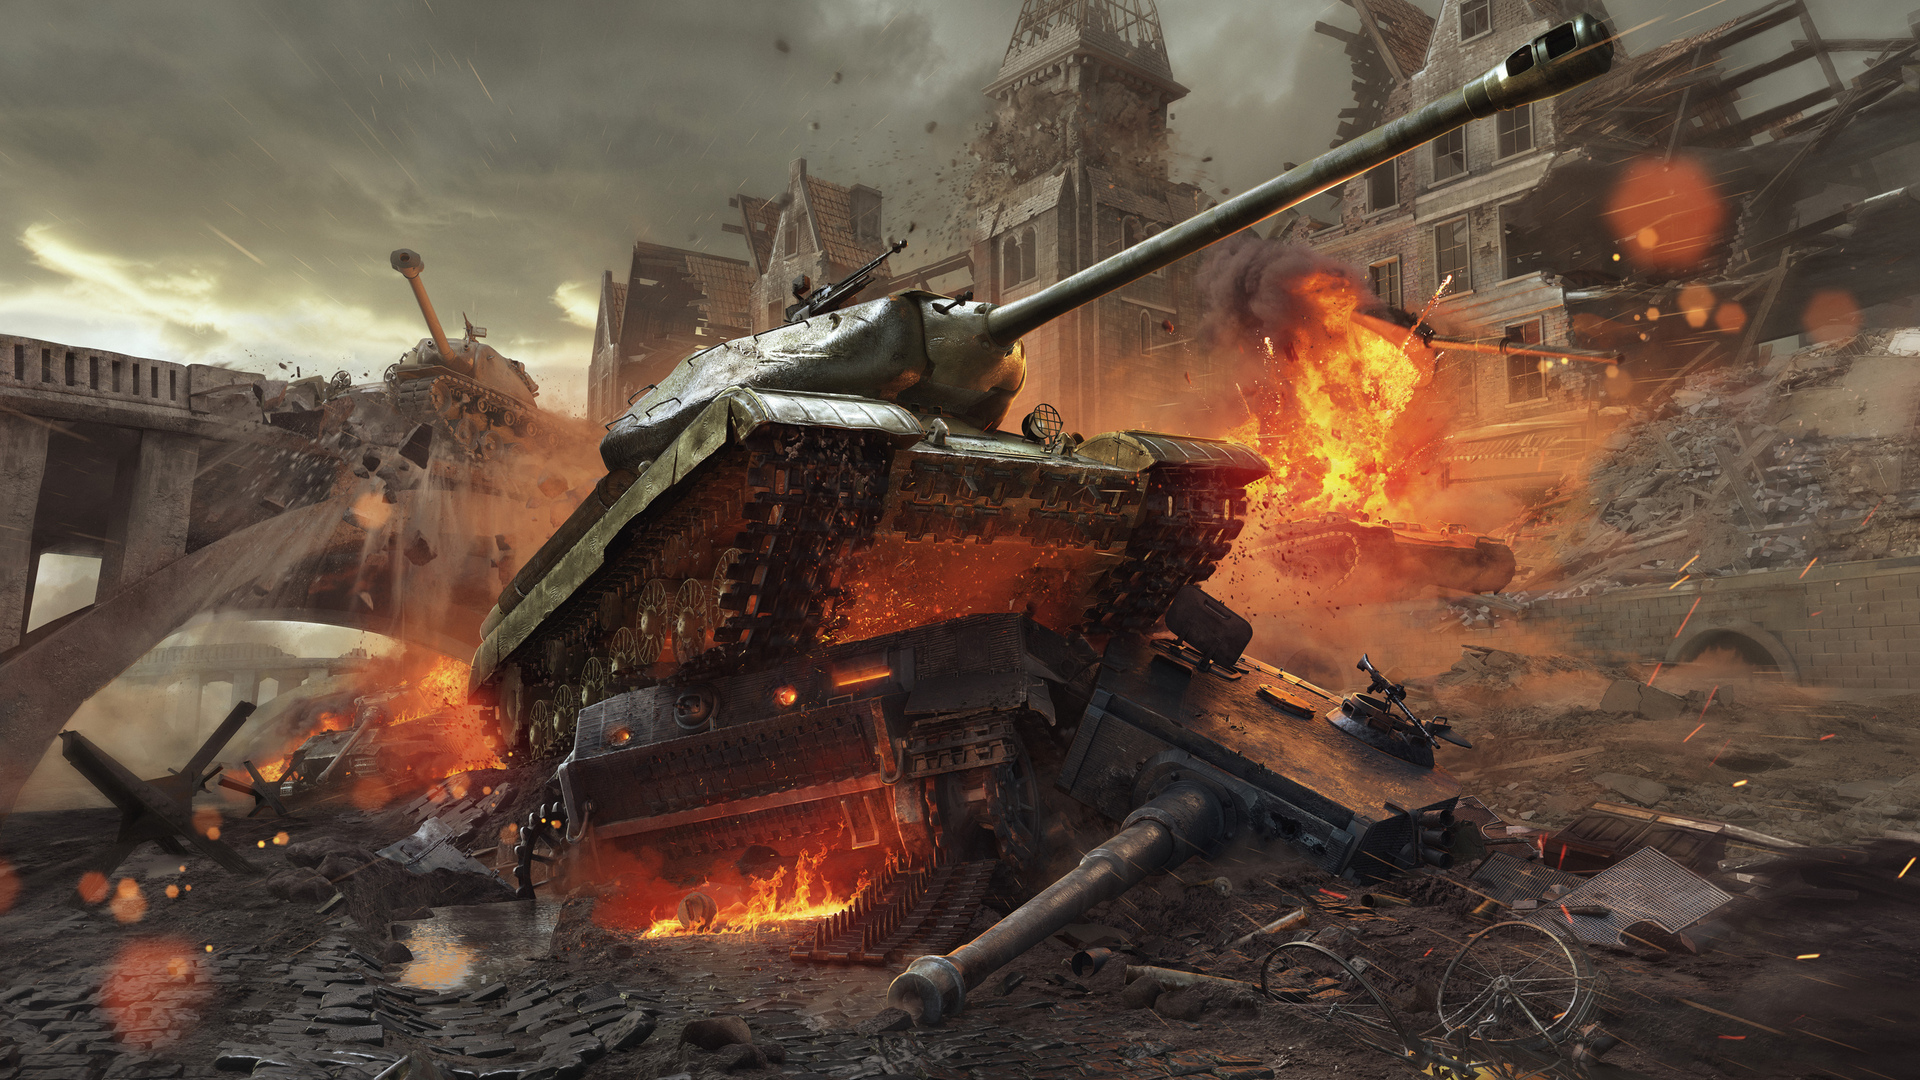 1920x1080 World Of Tanks New Frontiers Laptop Full Hd 1080p Hd 4k